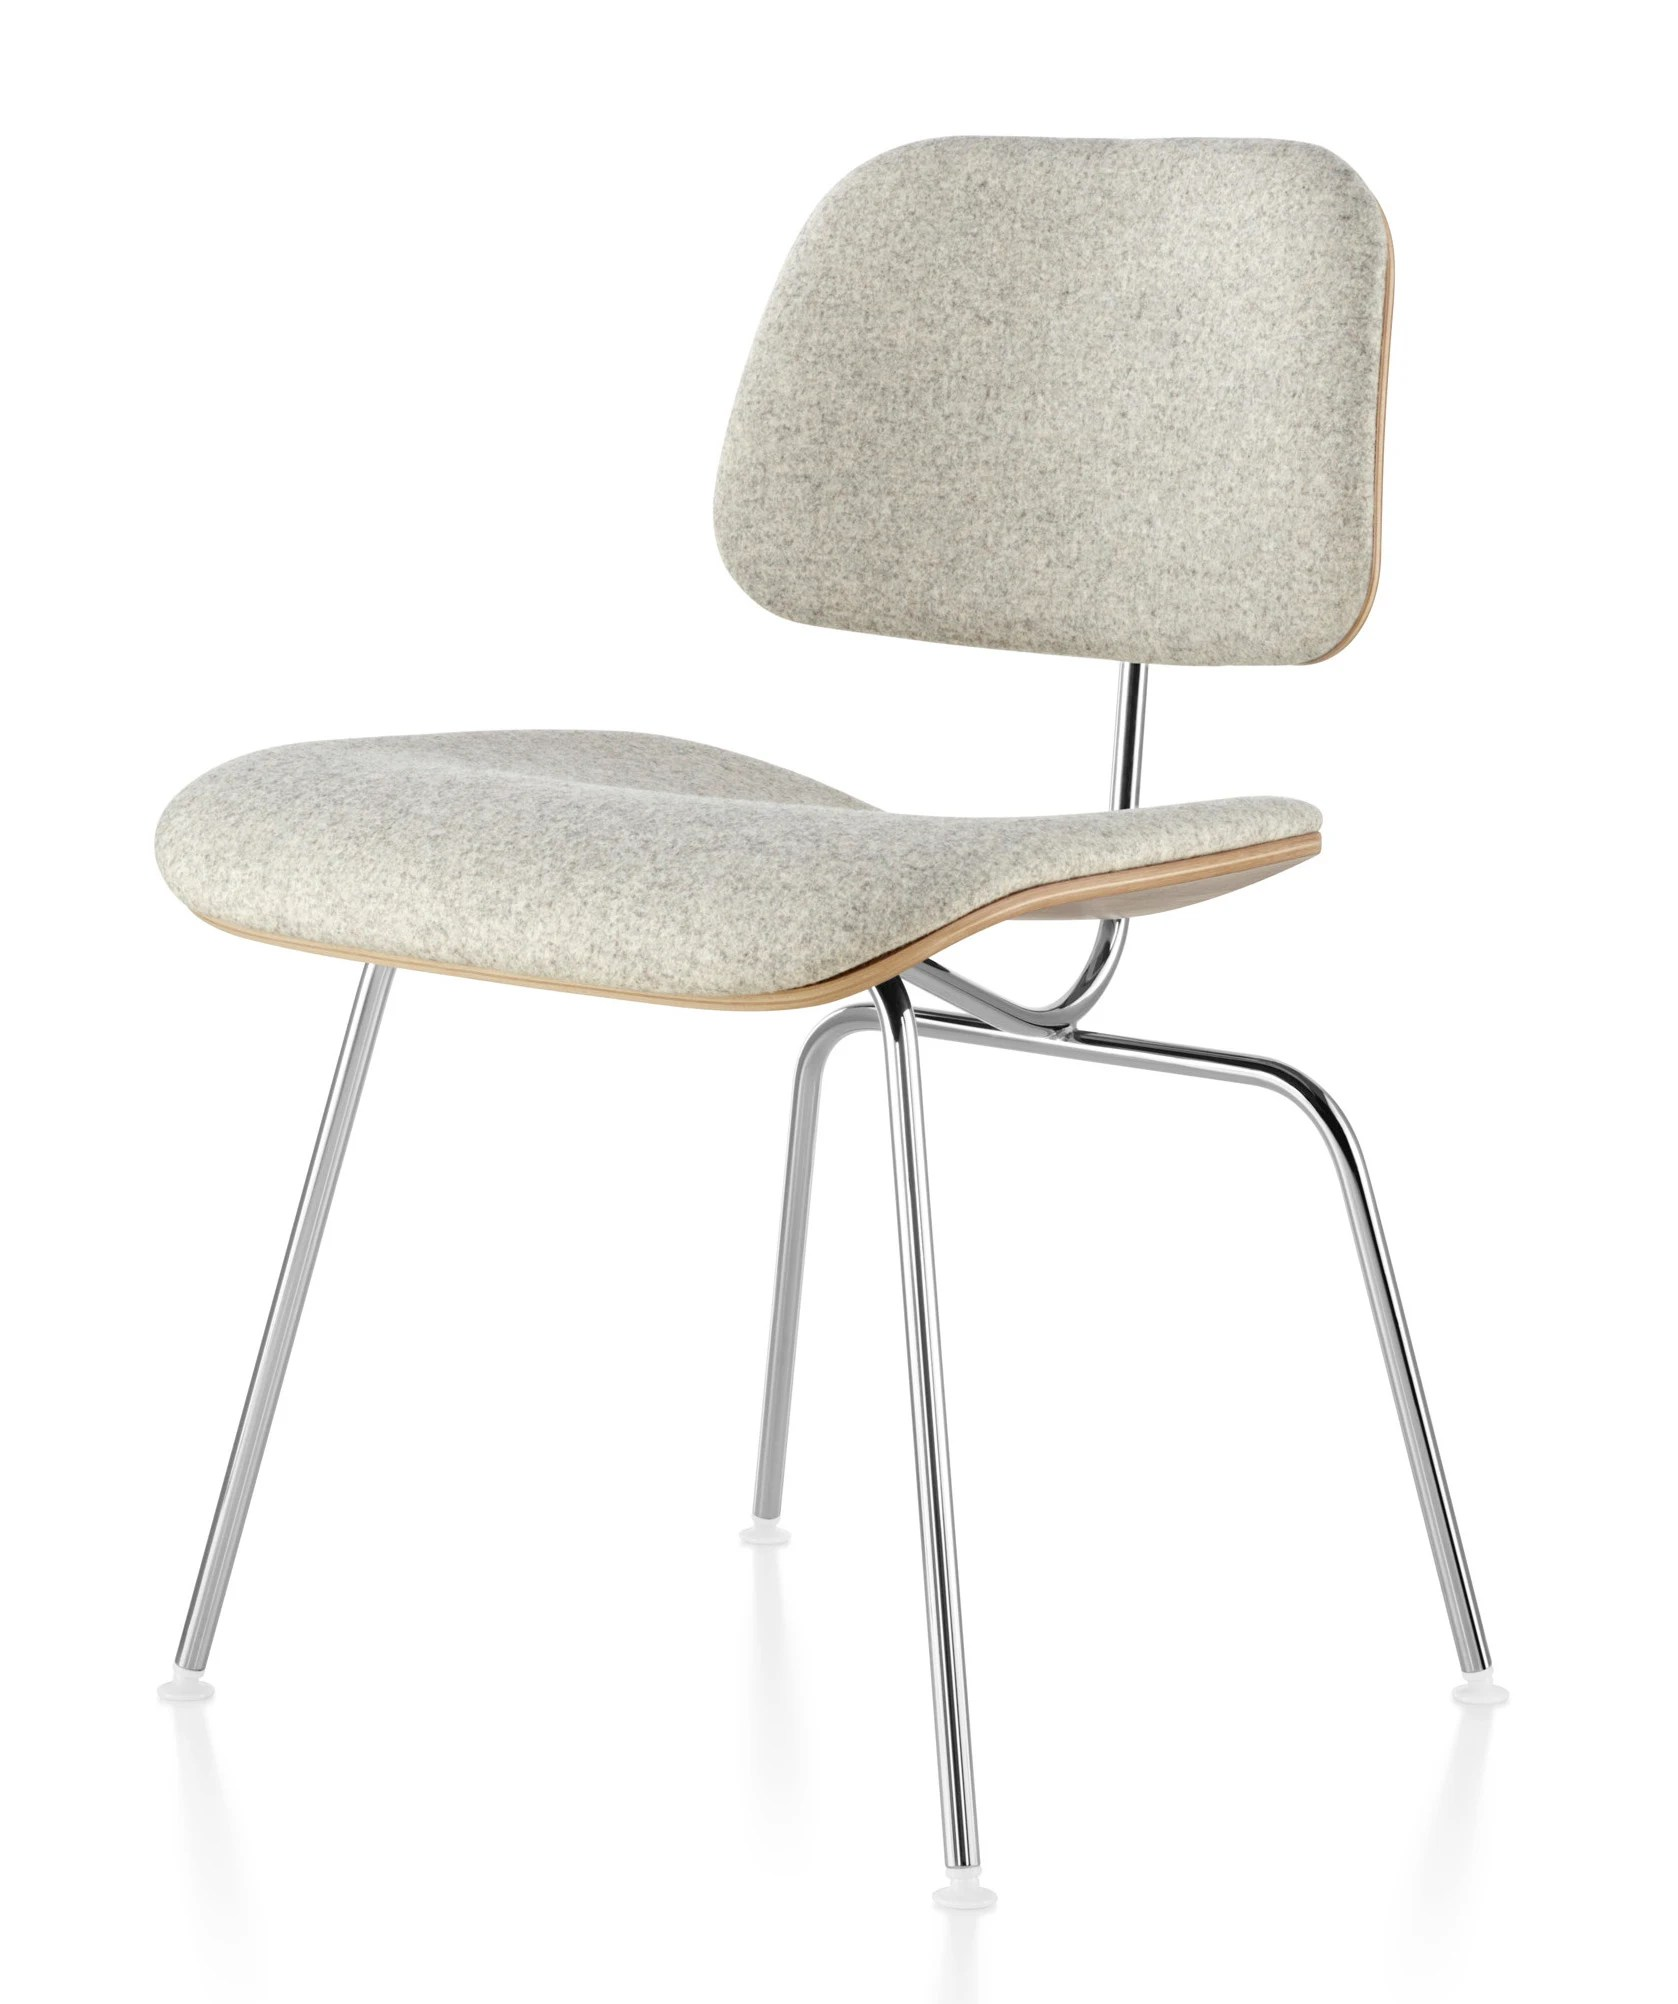 chair steel legs white covers argos herman miller eames molded plywood upholstered dining